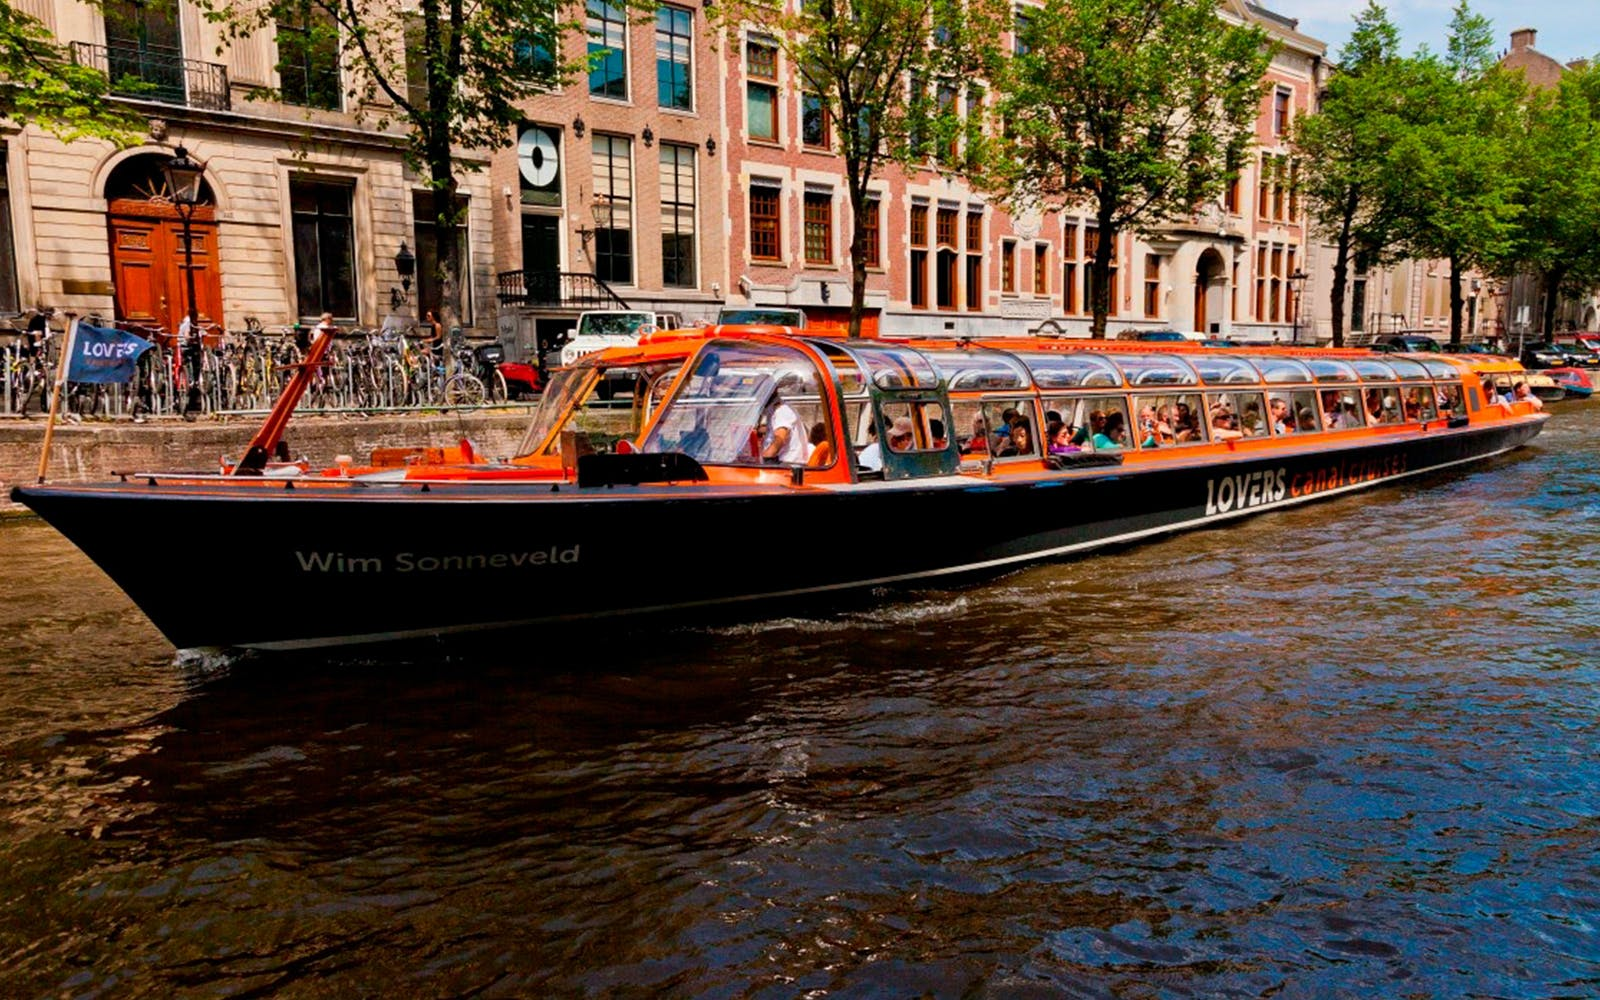 lovers: 1 hour amsterdam canal cruise-1